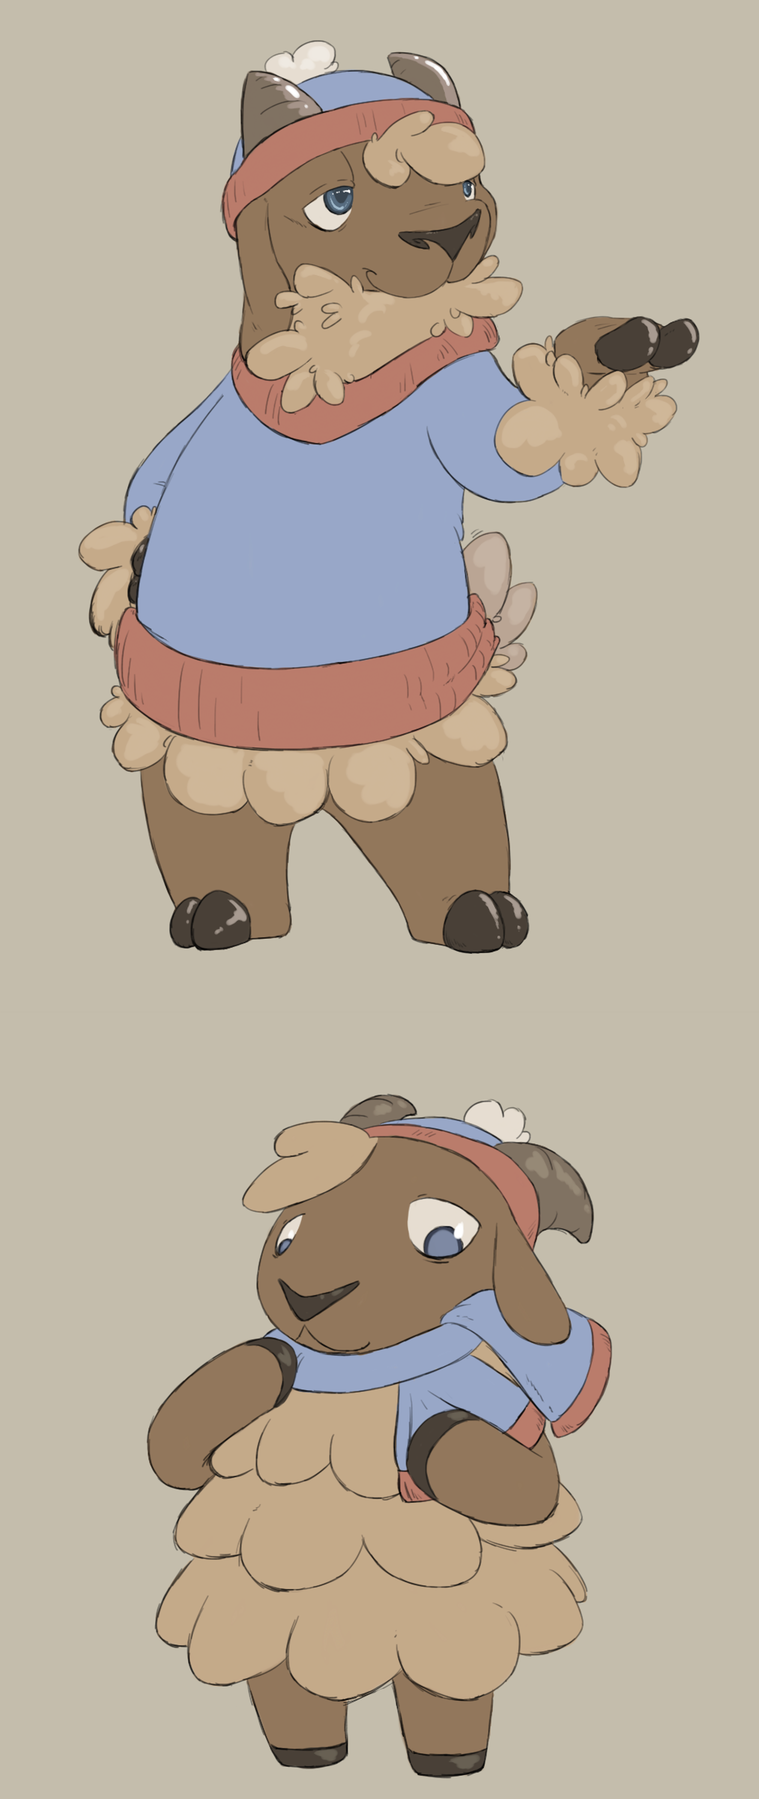 Featured image: SleepySheepy.PNG